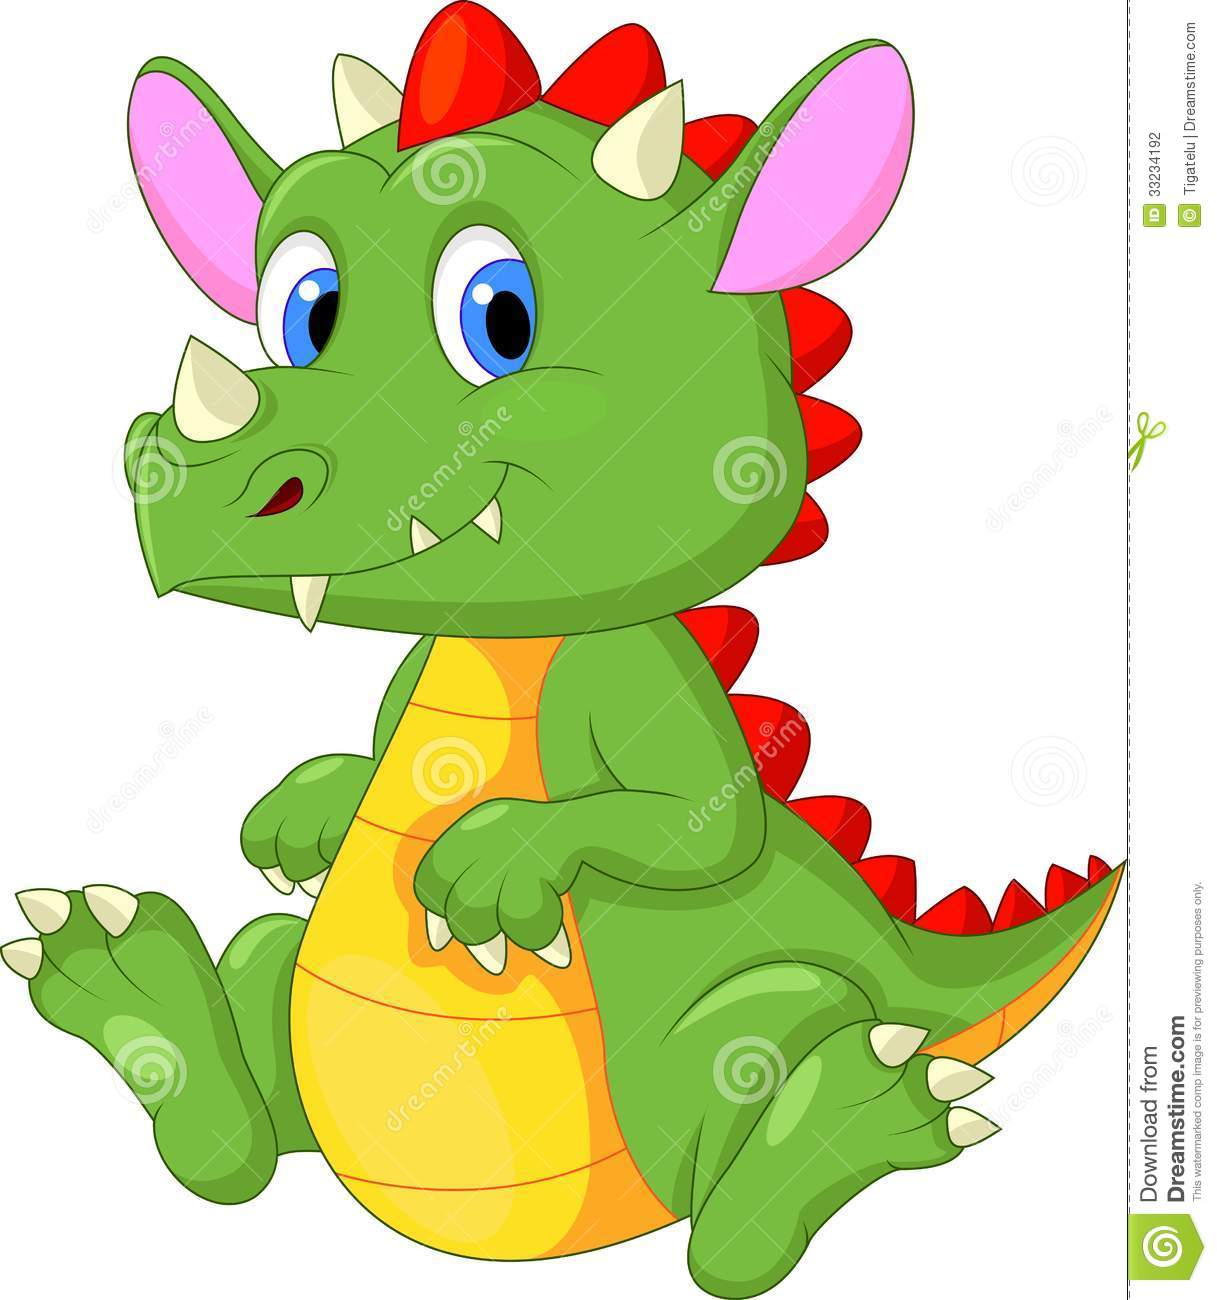 Cute baby dragon cartoon stock vector. Illustration of ...